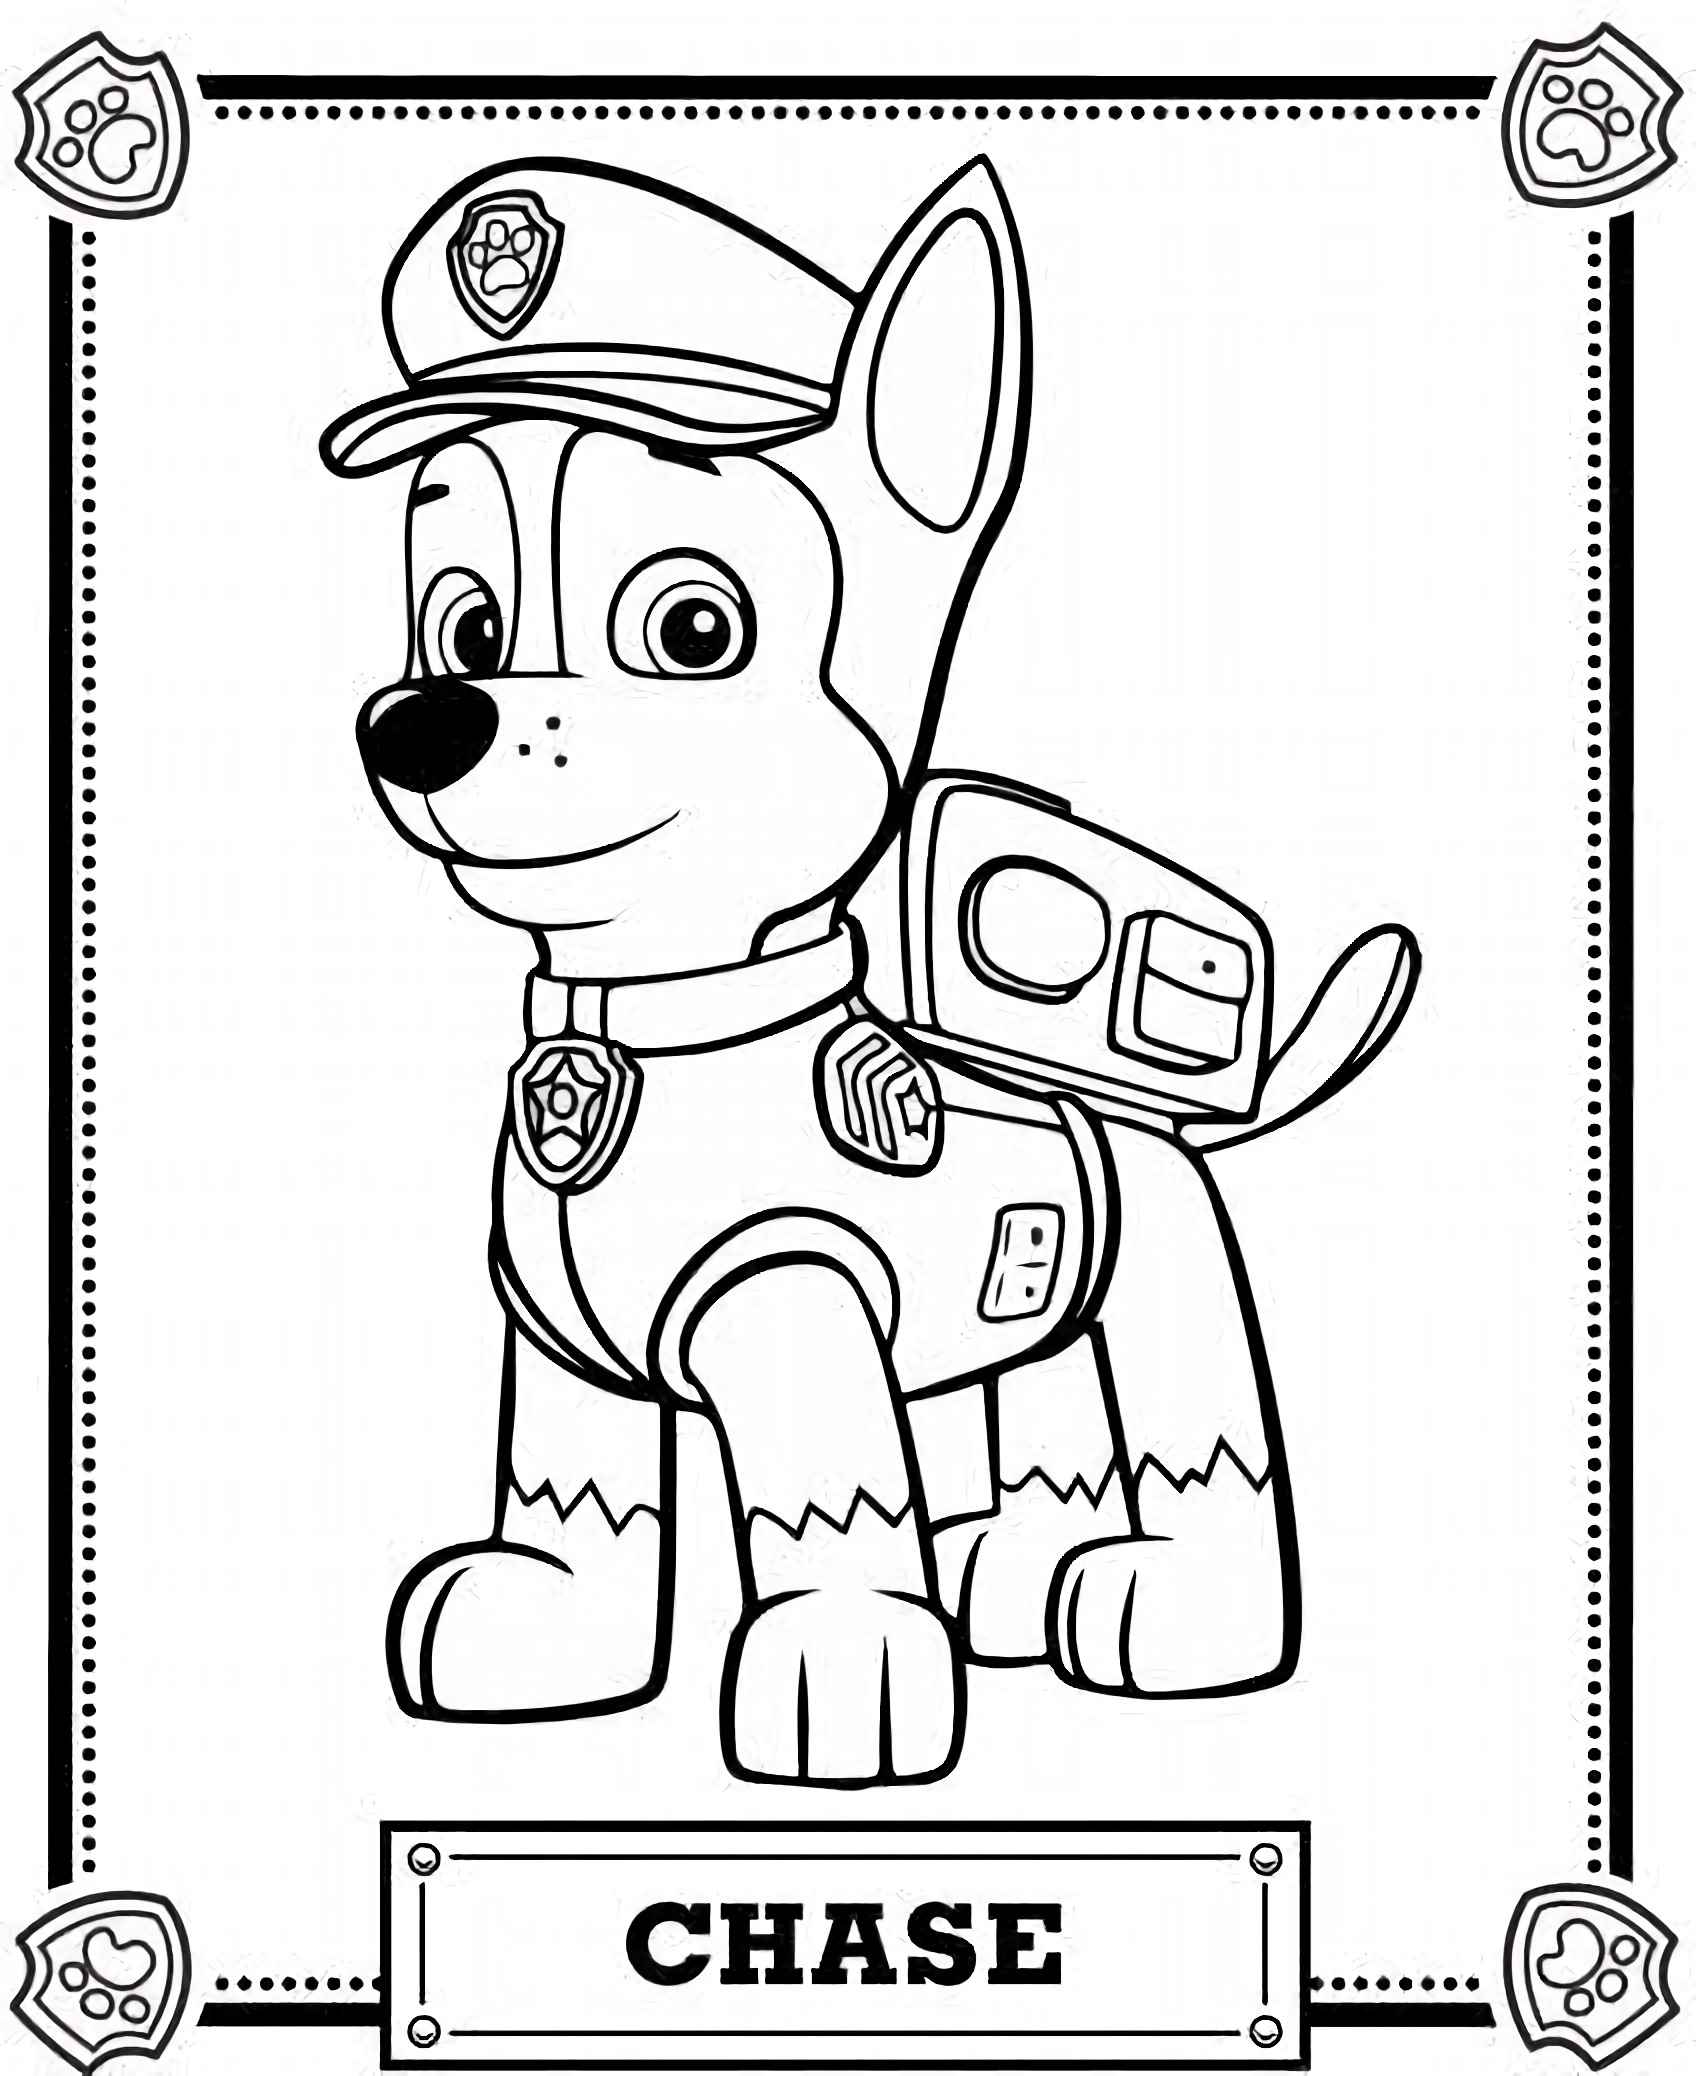 Chase From Paw Patrol Coloring Page